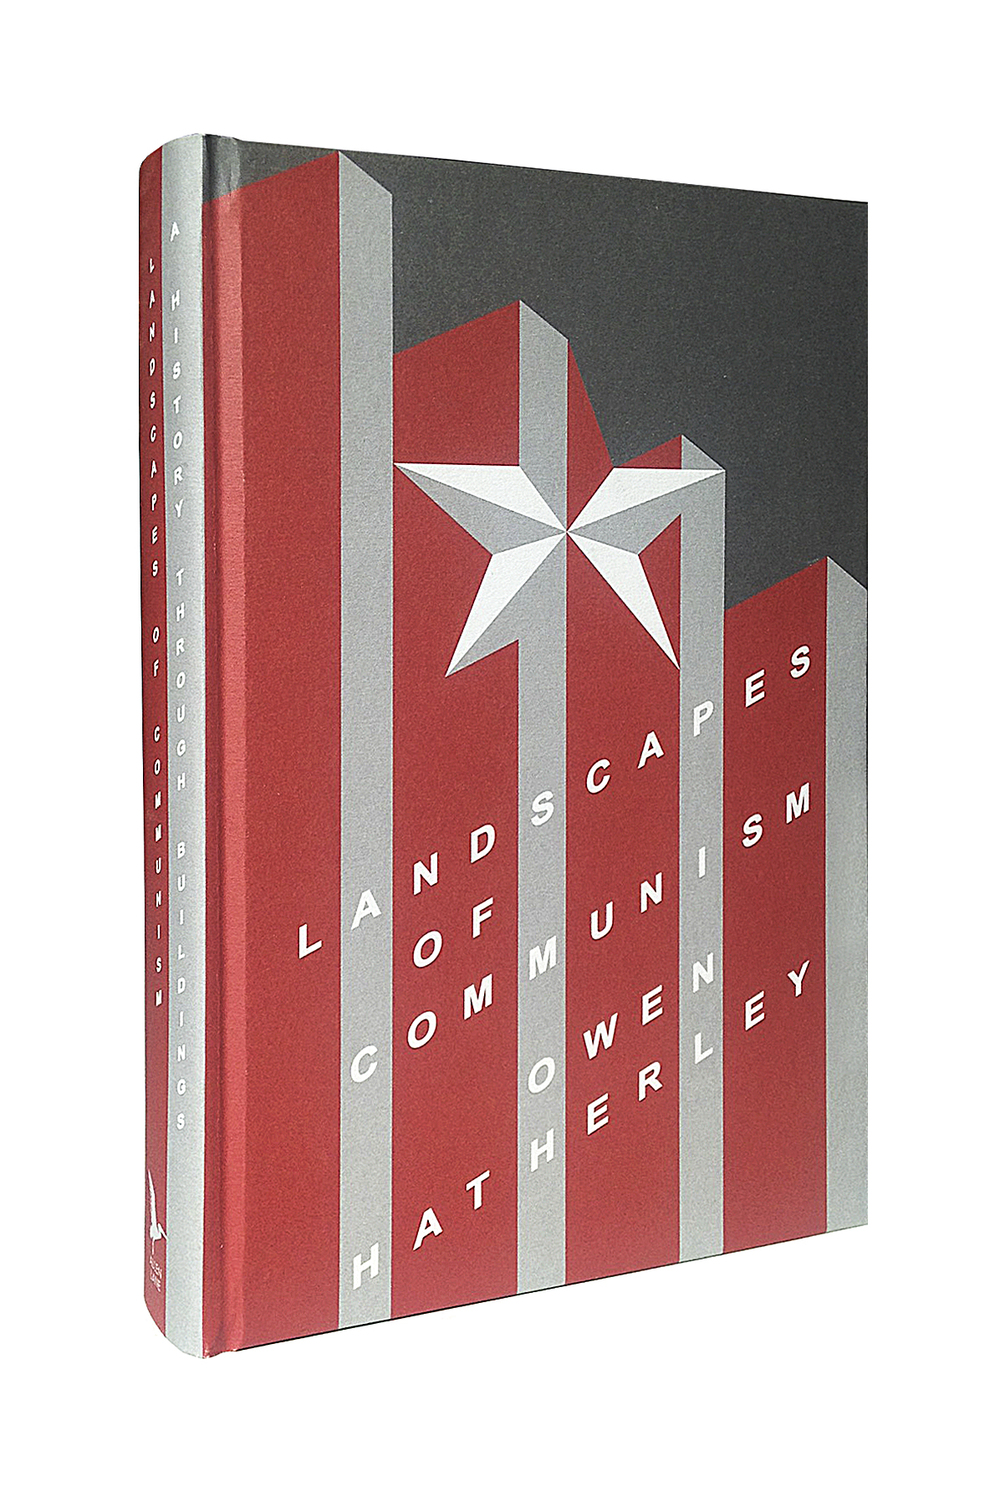 Landscapes of Communism by Owen Hatherley - Art Direction: Jim Stoddart Design: Fuel